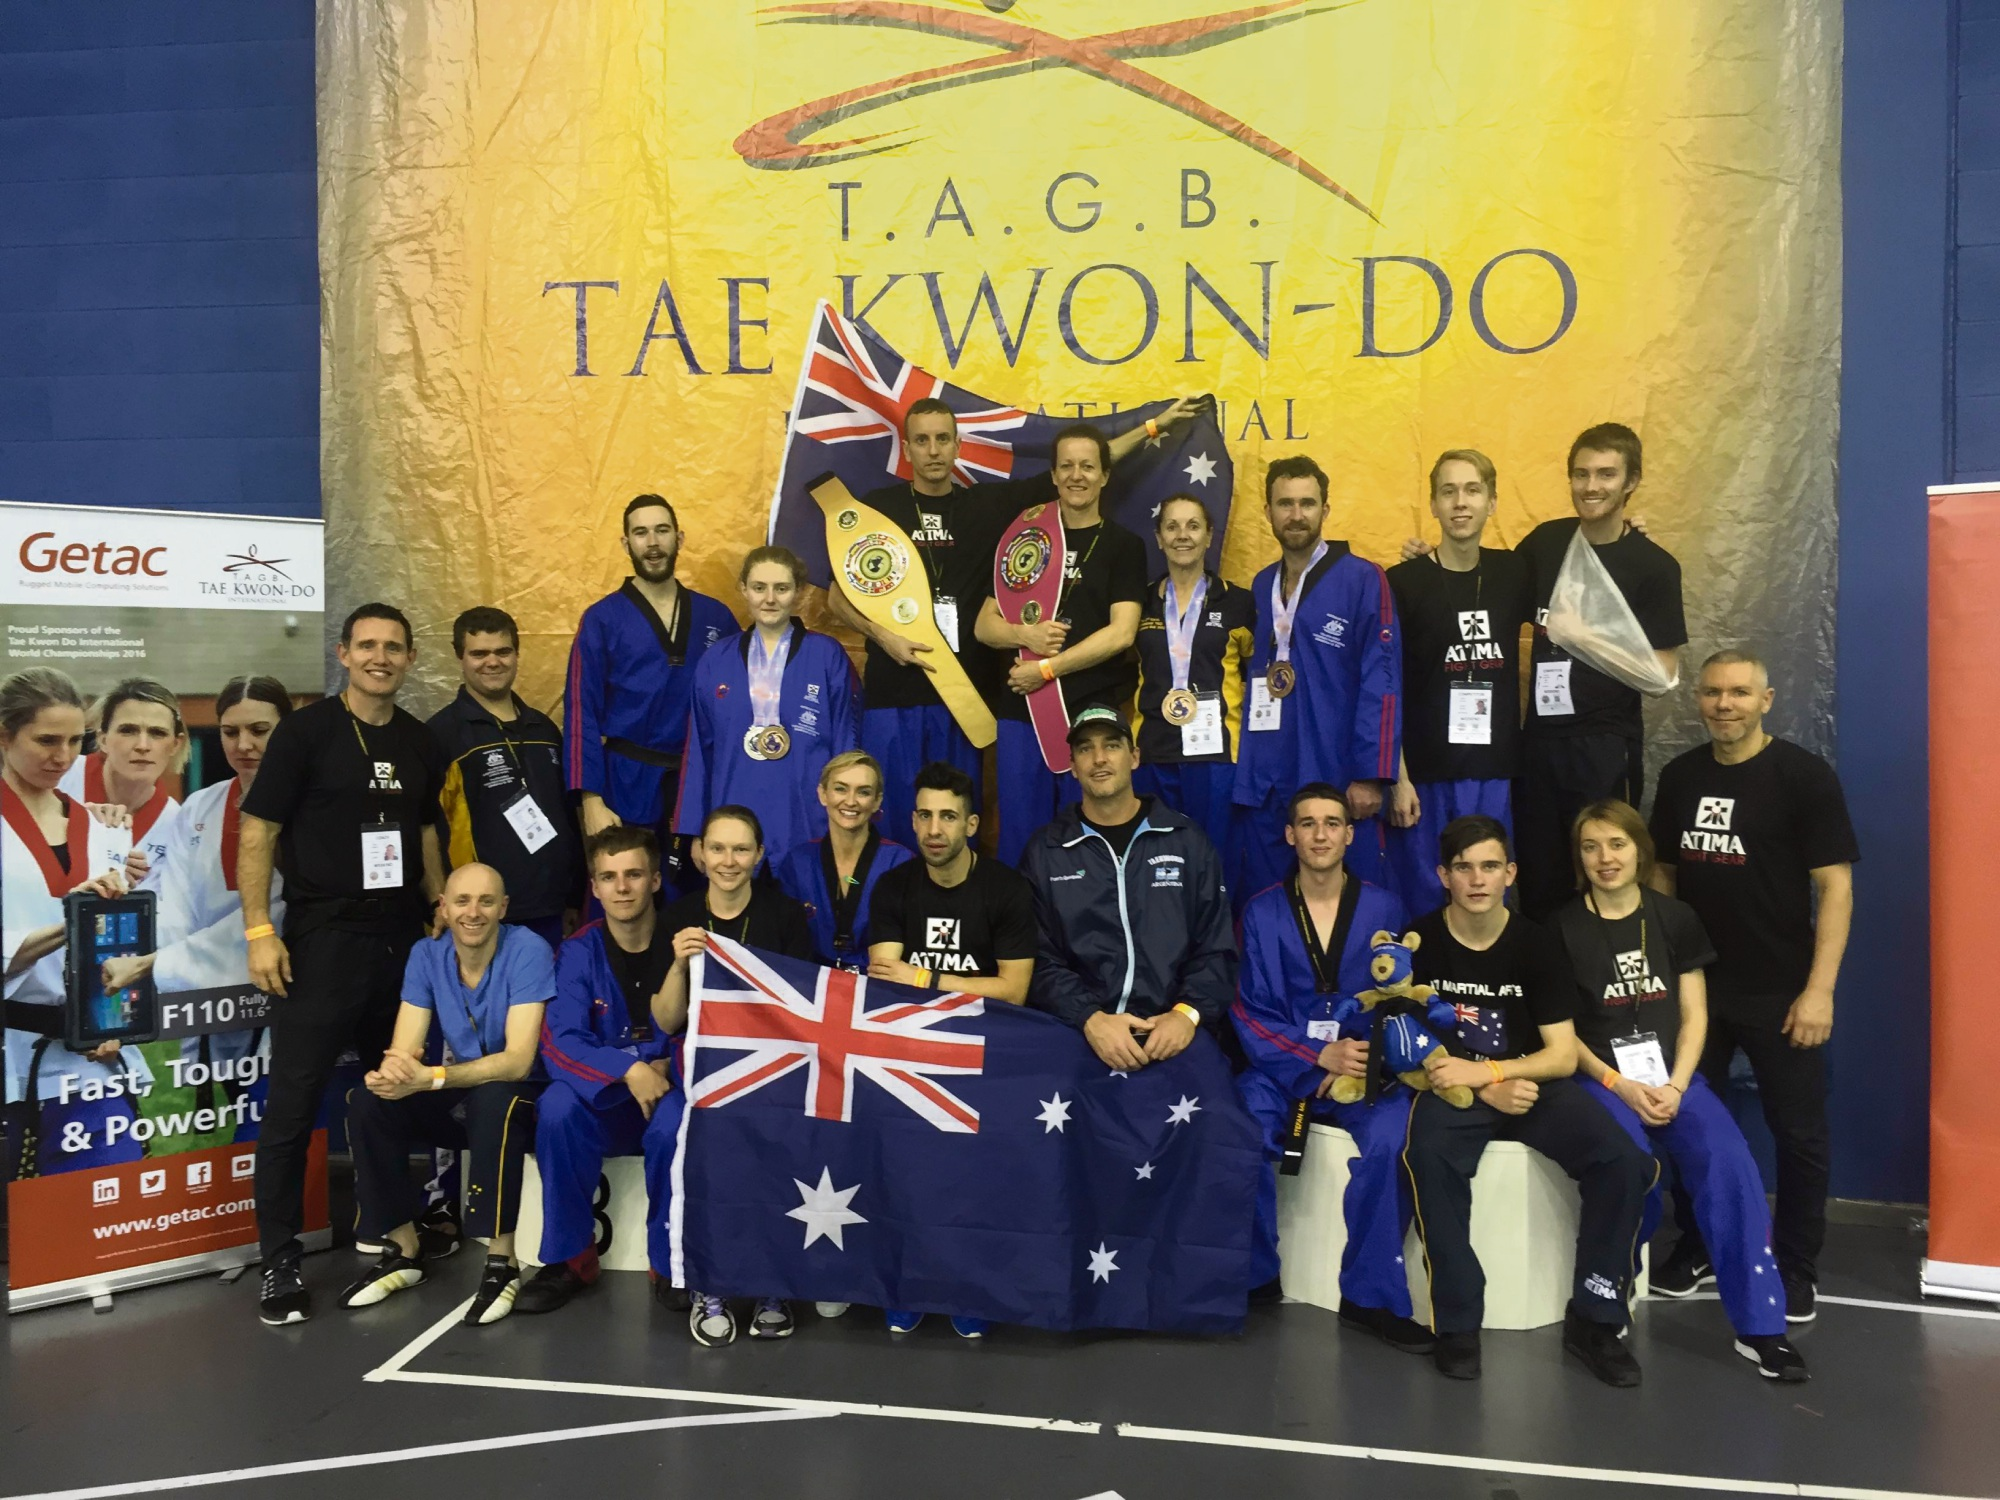 Scarborough: ATI Martial Arts picks up swag of medals at taekwondo world champs event